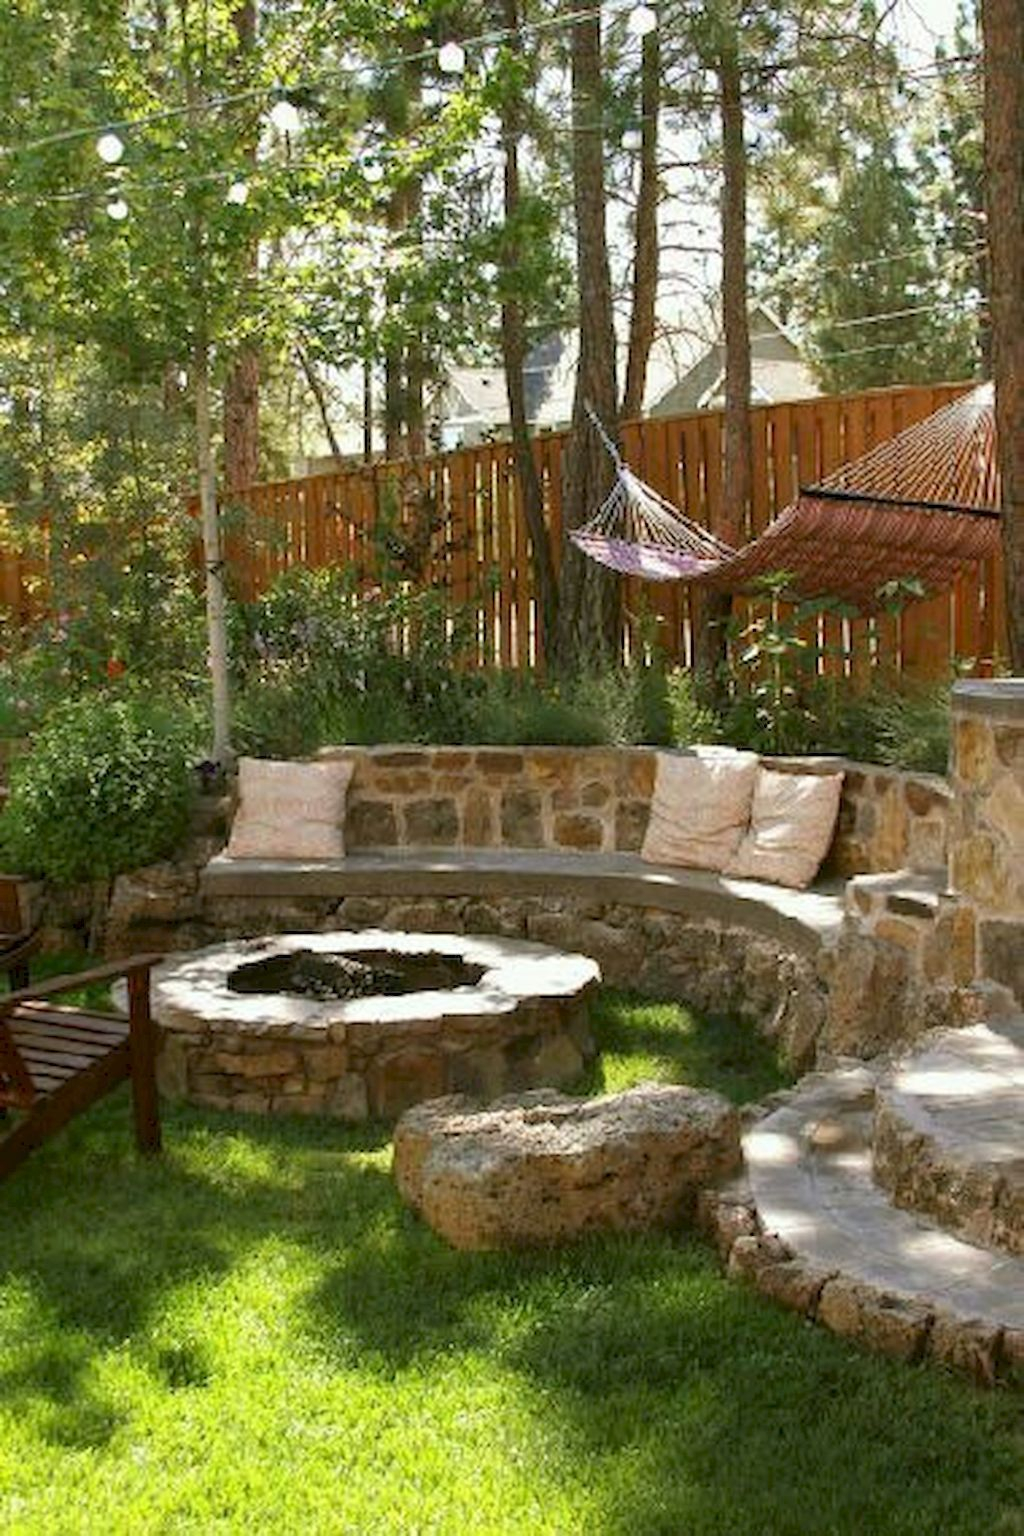 80 Small Backyard Landscaping Ideas On A Budget Patio Ideas pertaining to Inexpensive Landscaping Ideas For Backyard